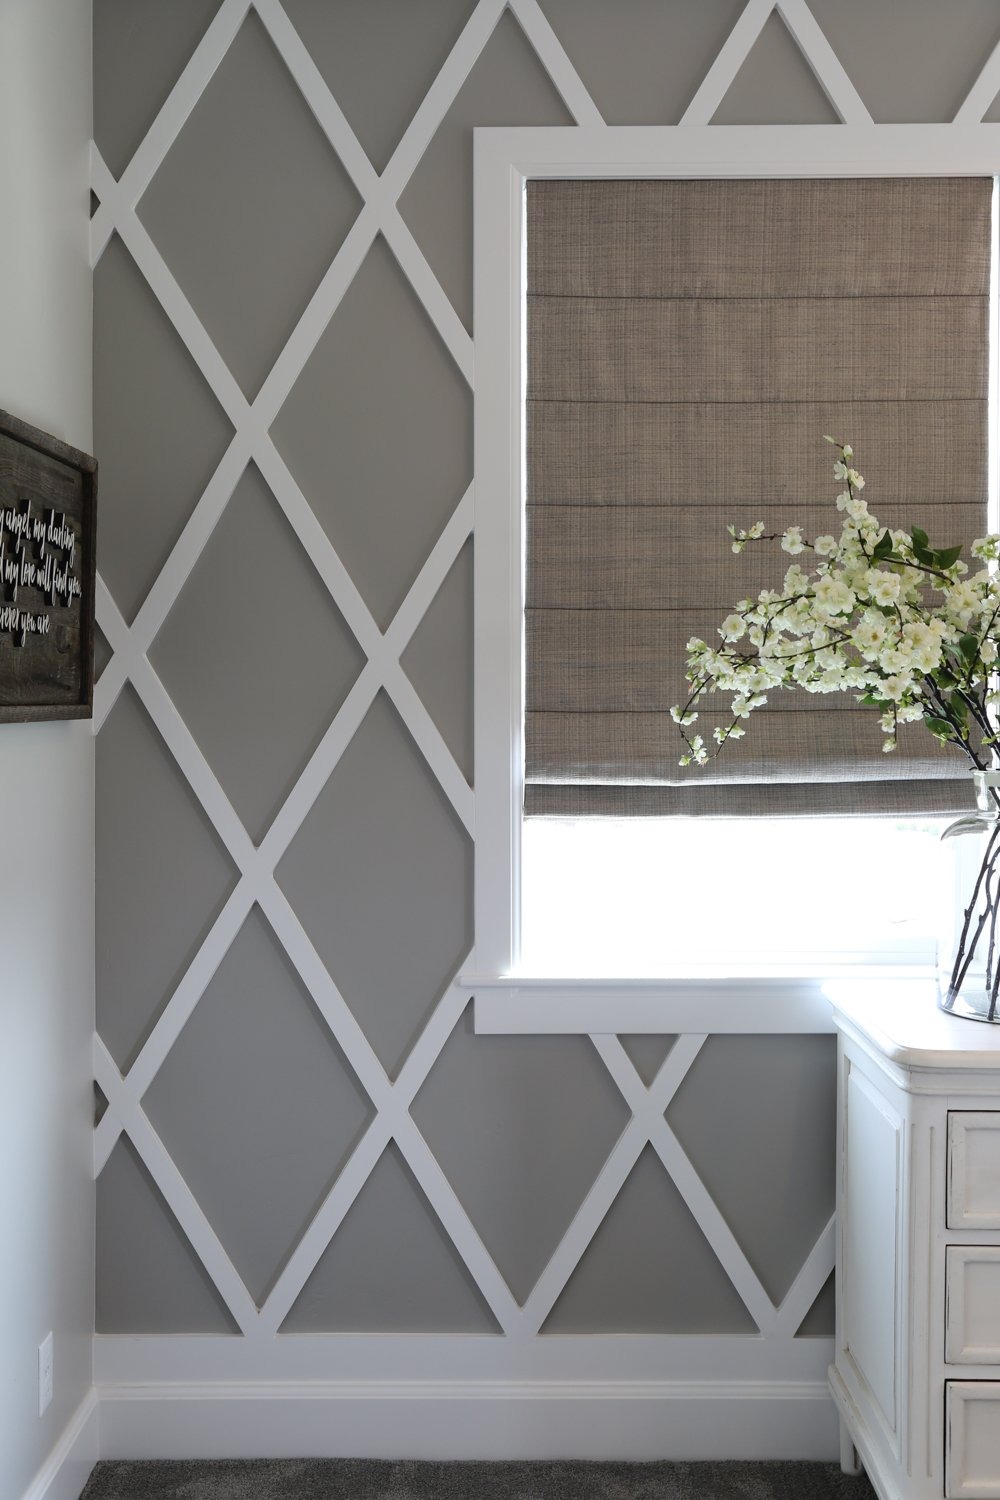 Trim attached to wall to created raised diamond pattern.